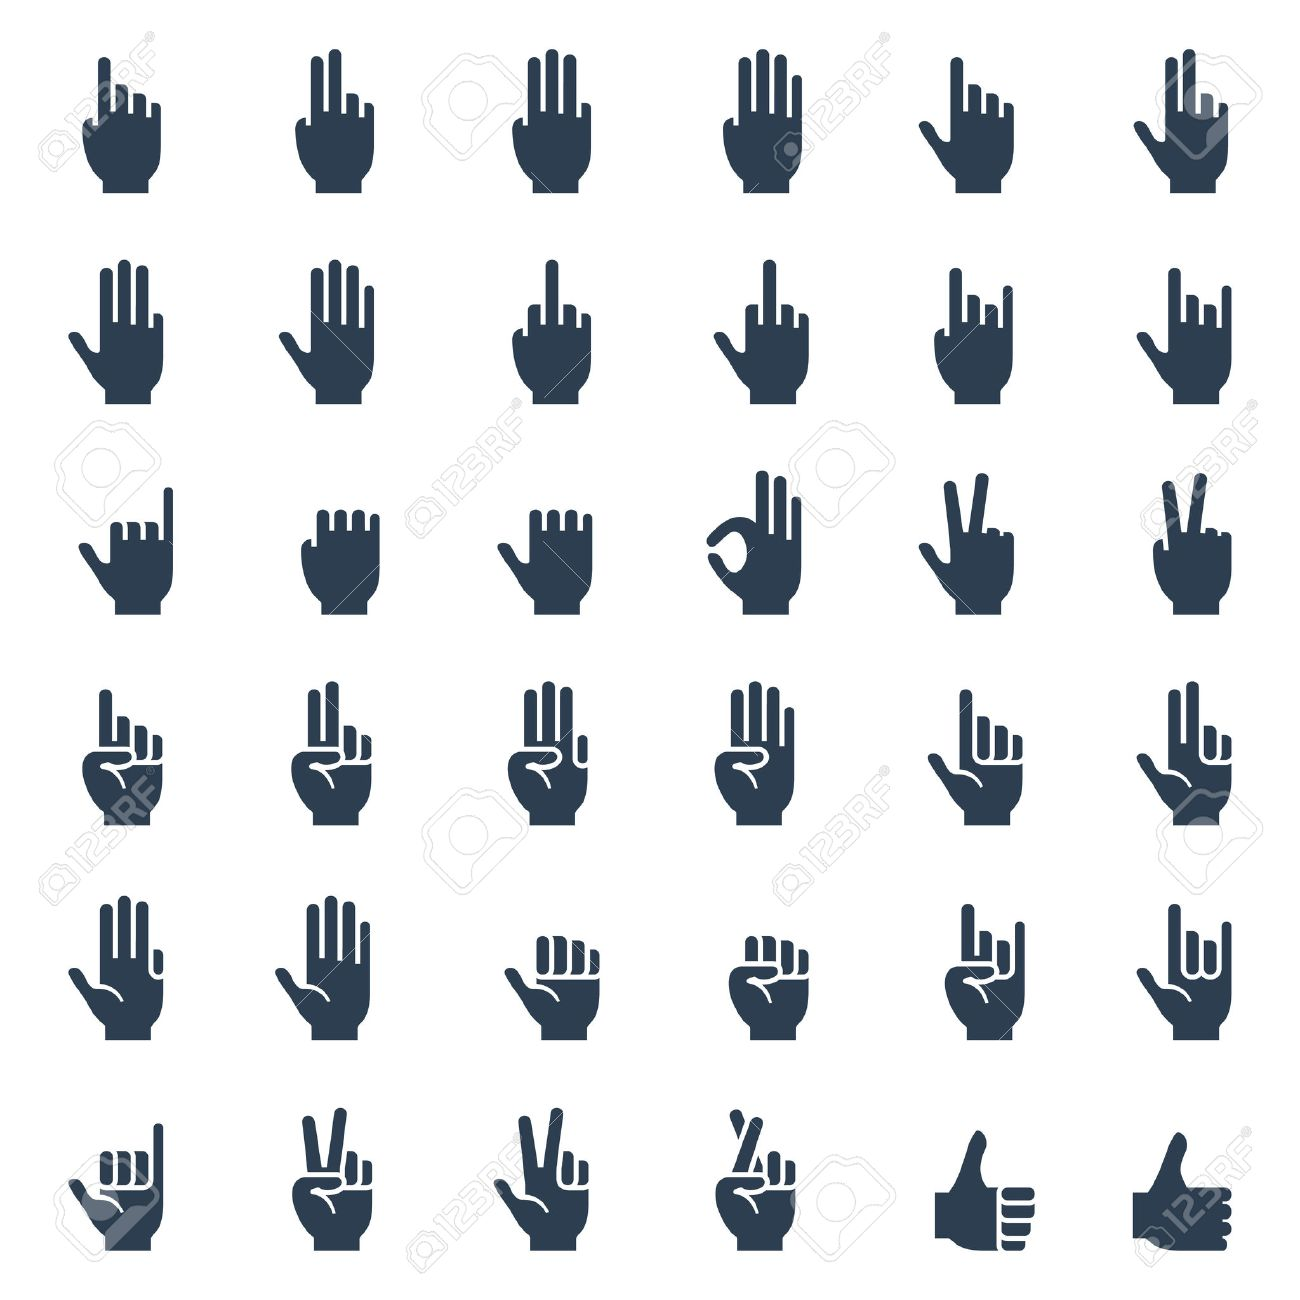 2991 middle finger cliparts stock vector and royalty free middle human hand gestures signals and signs body language icon set buycottarizona